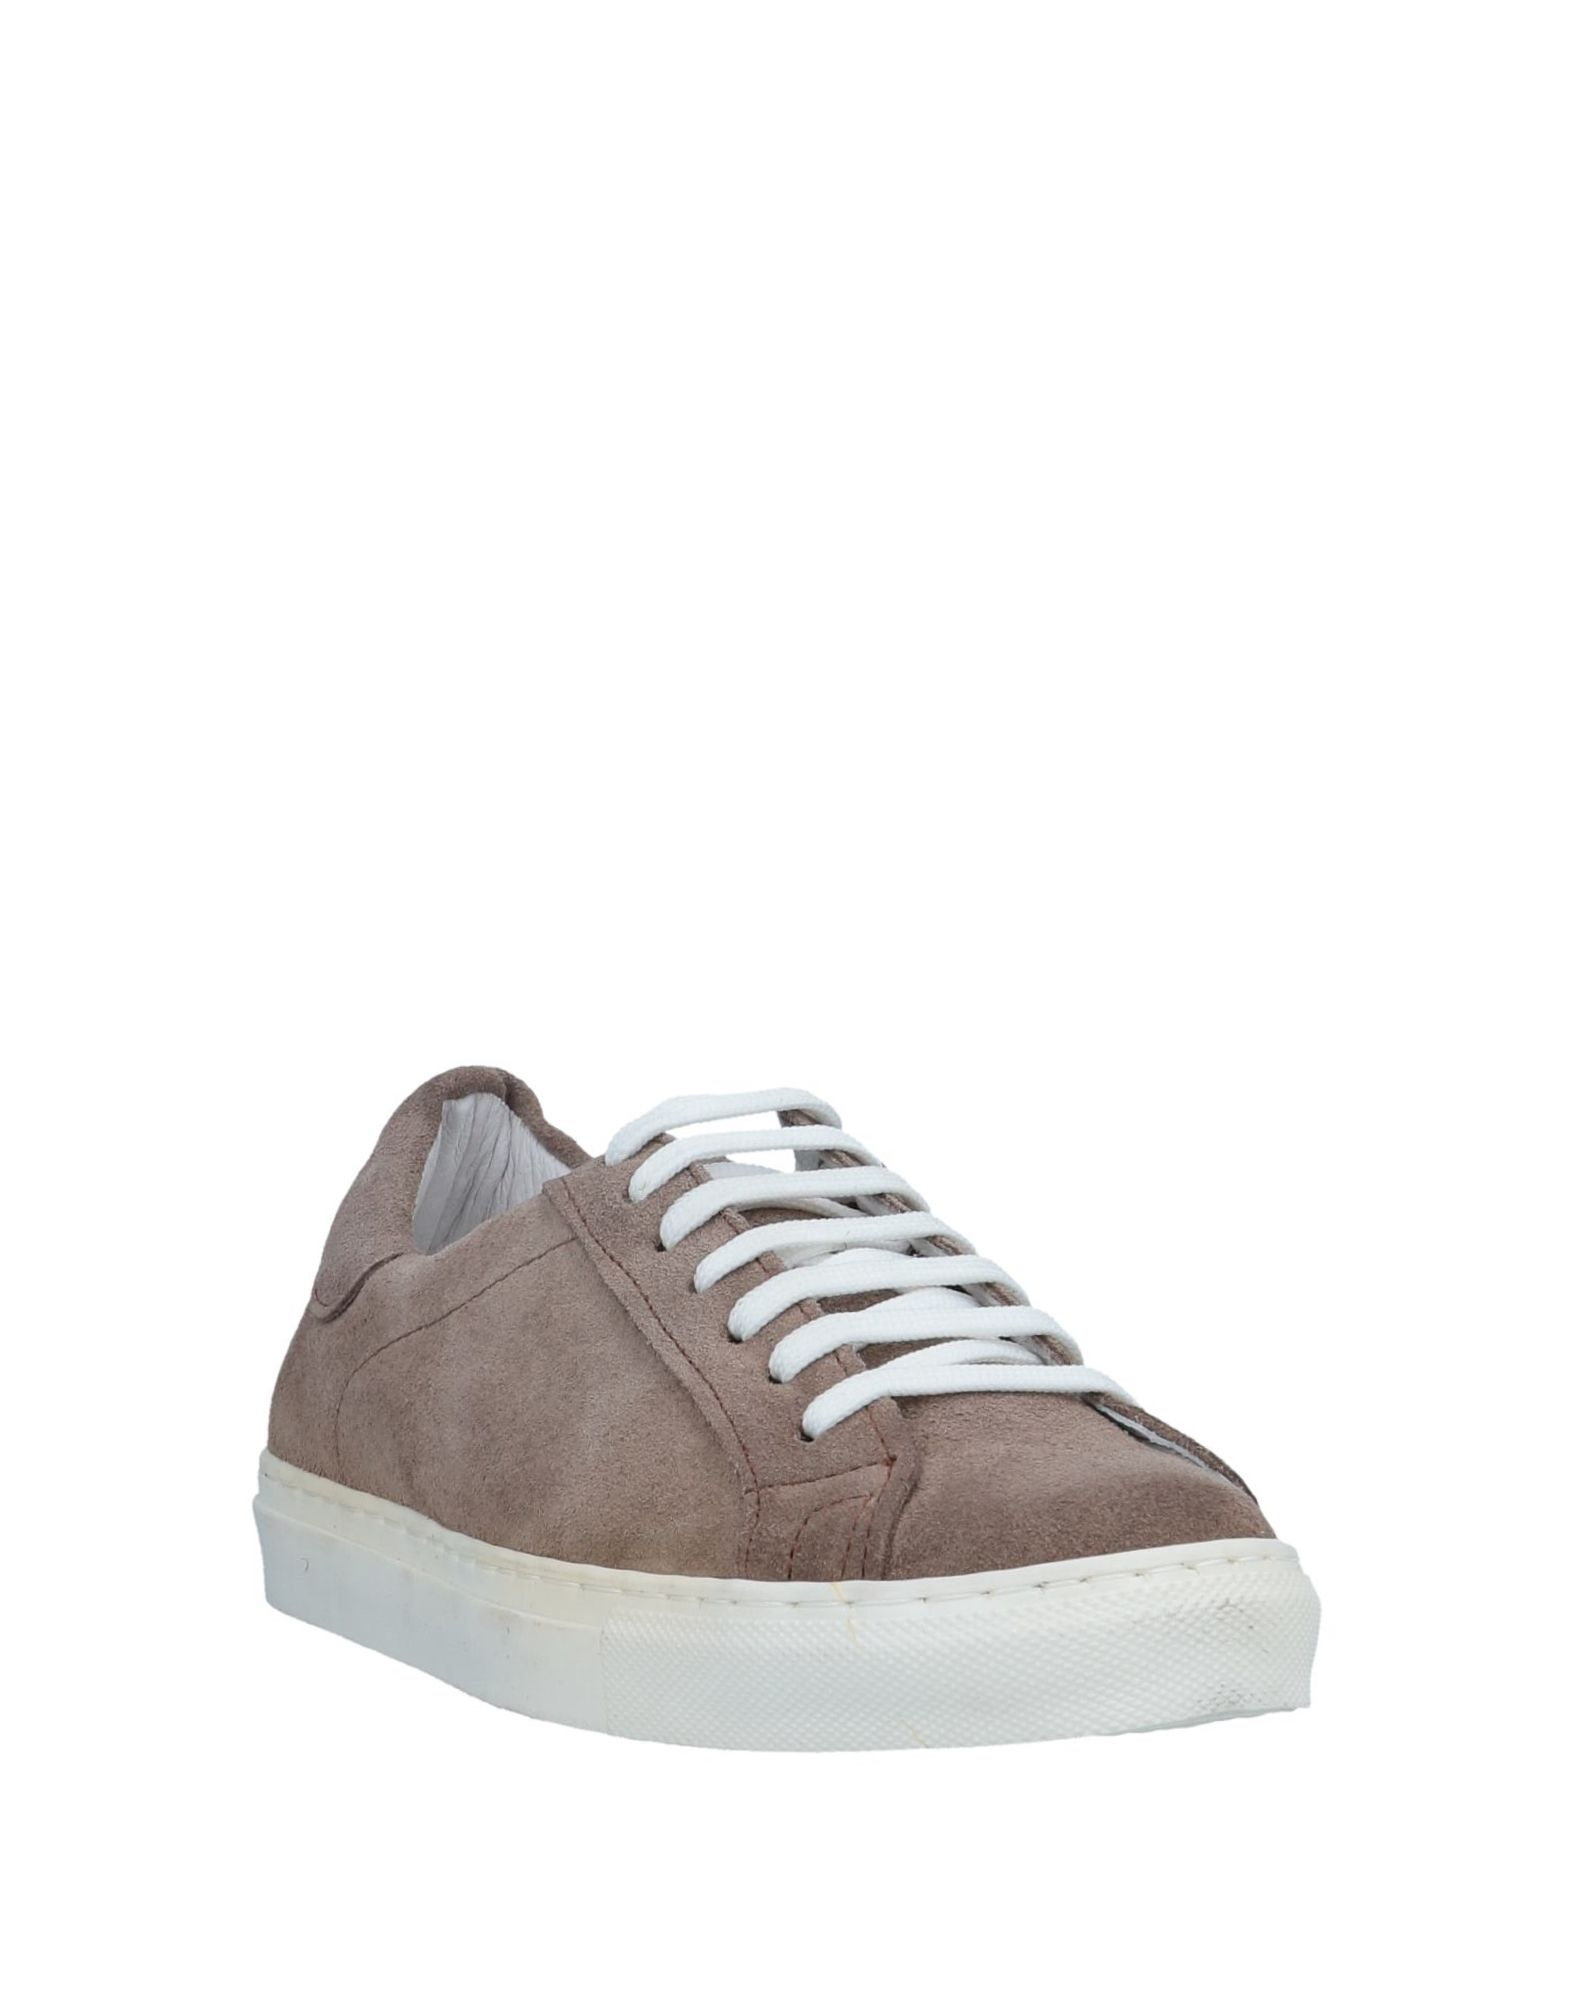 Marc May Sneakers Sneakers Sneakers - Men Marc May Sneakers online on  United Kingdom - 11555880WC 950536